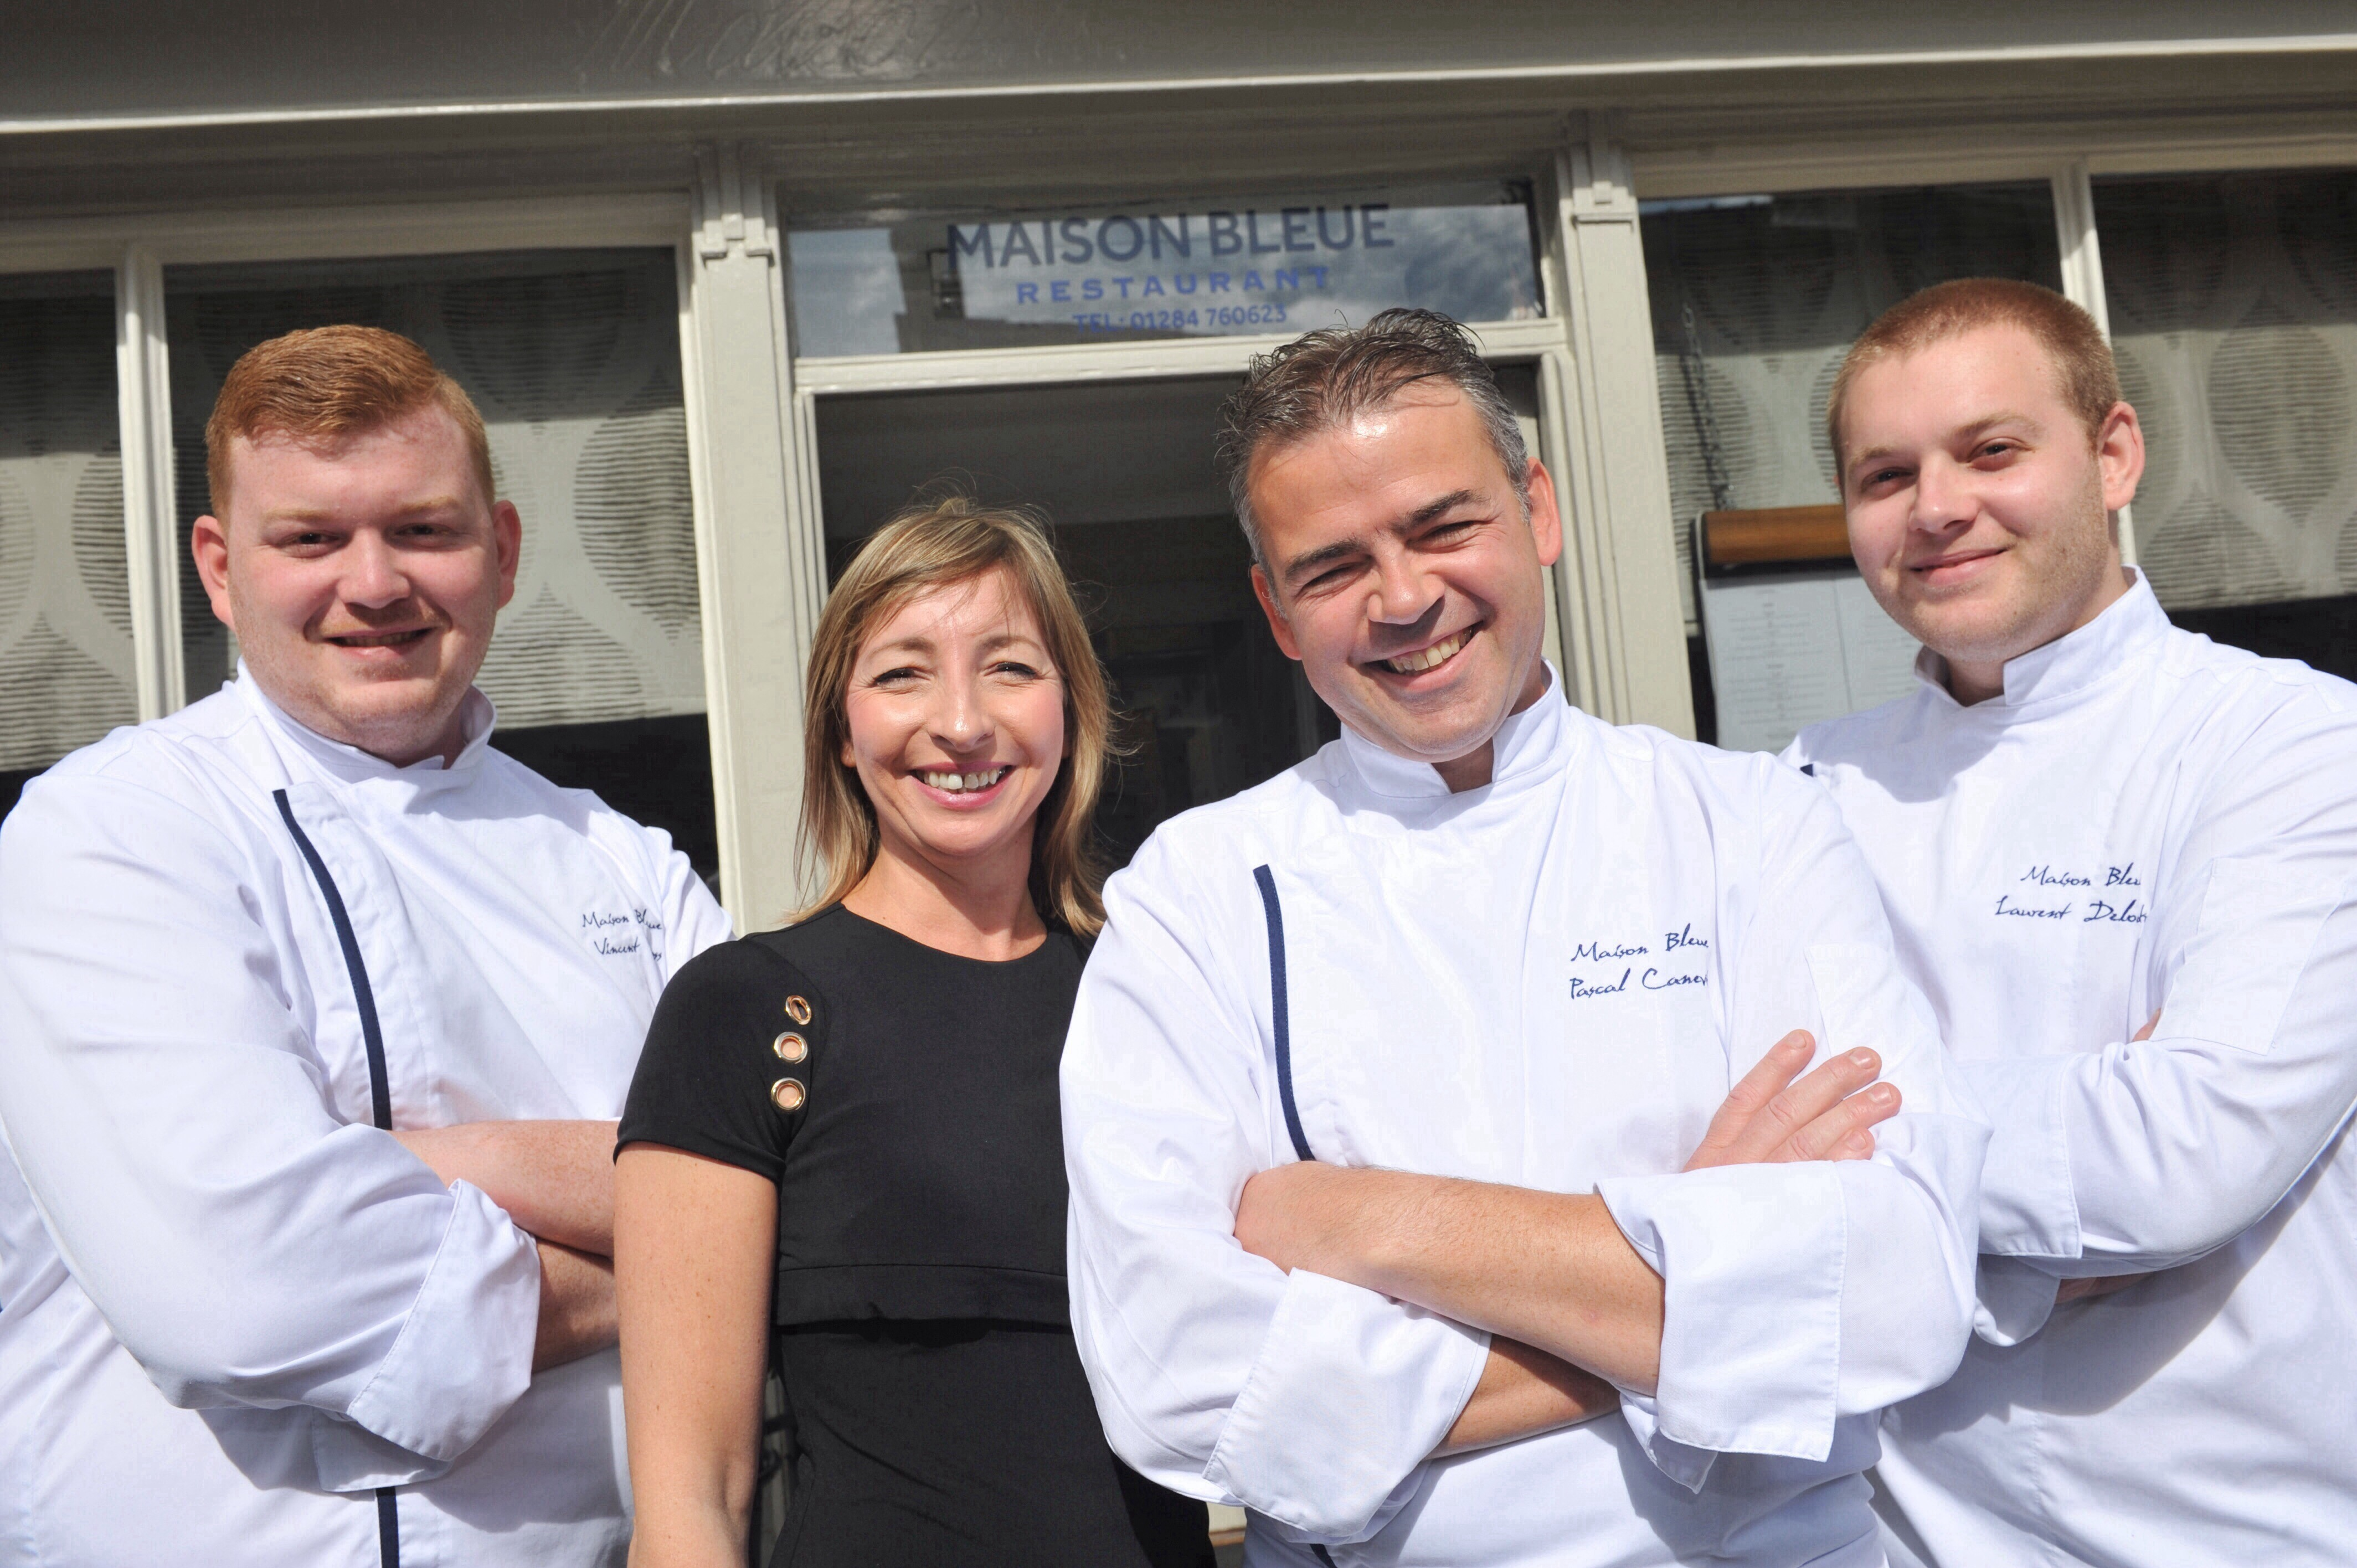 Double accolade as Maison Bleue puts Suffolk on Global Culinary Map